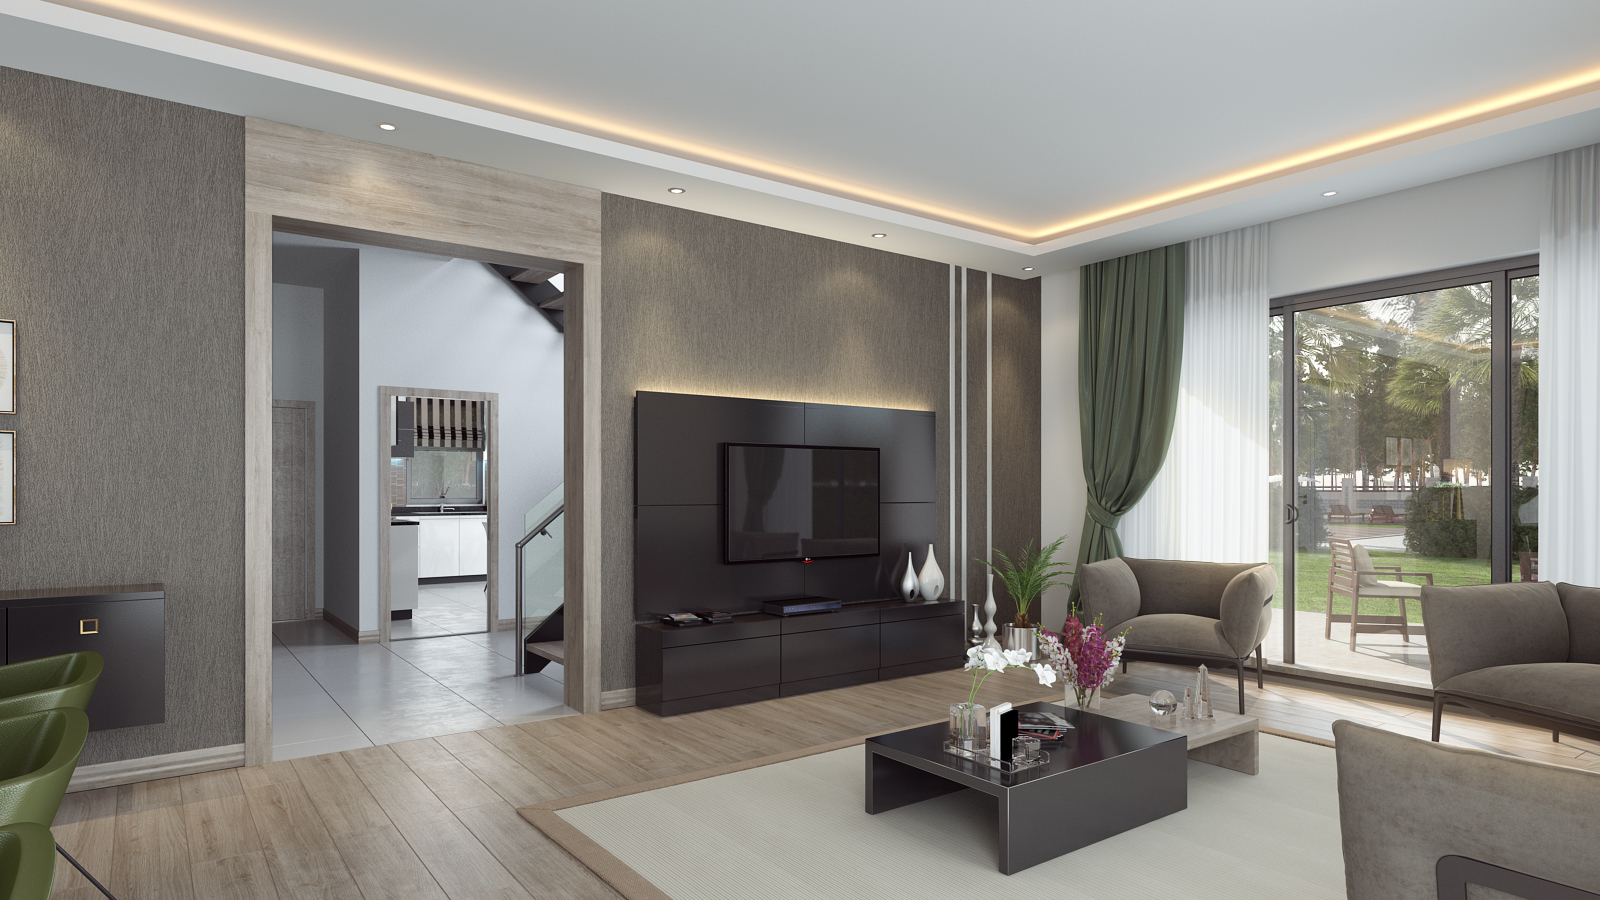 living room interior render from corner